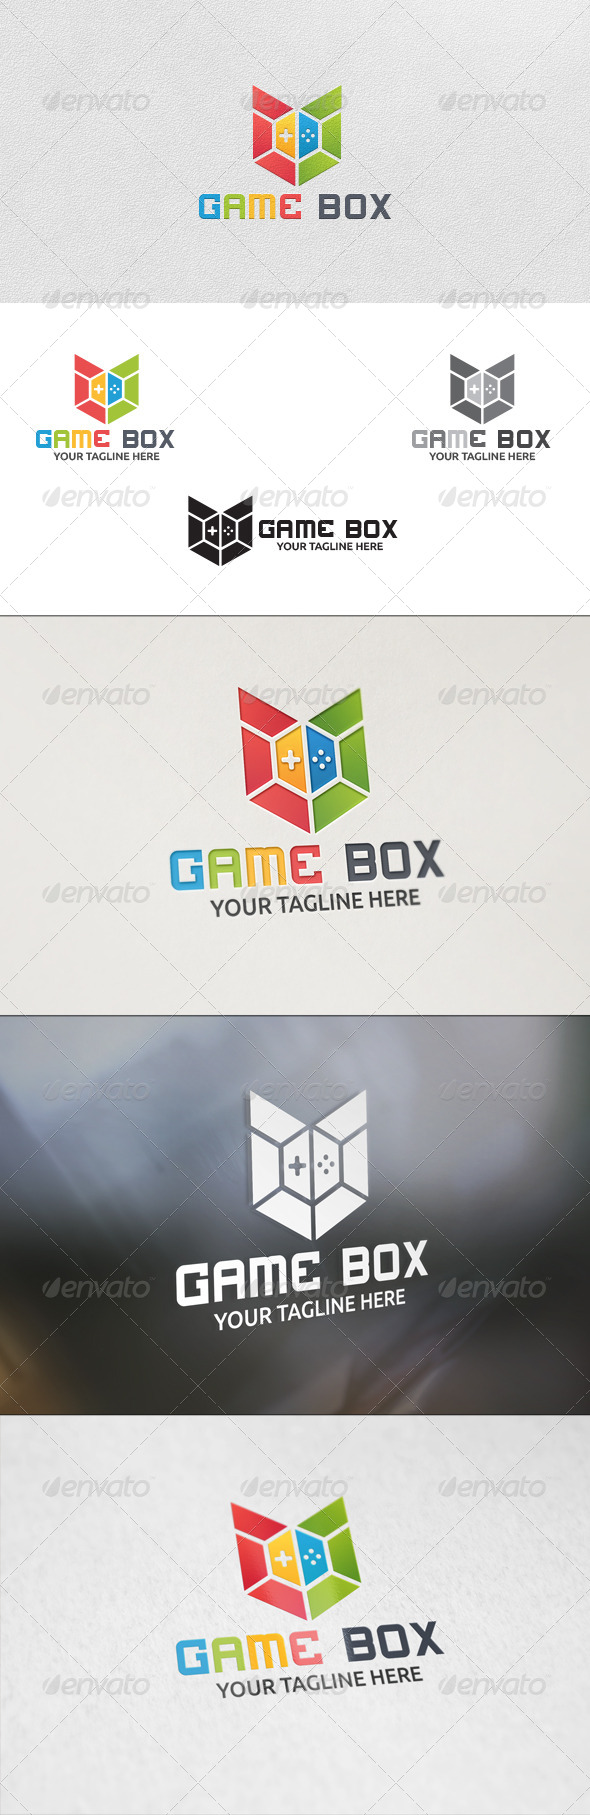 GraphicRiver Game Box Logo Template 5898177